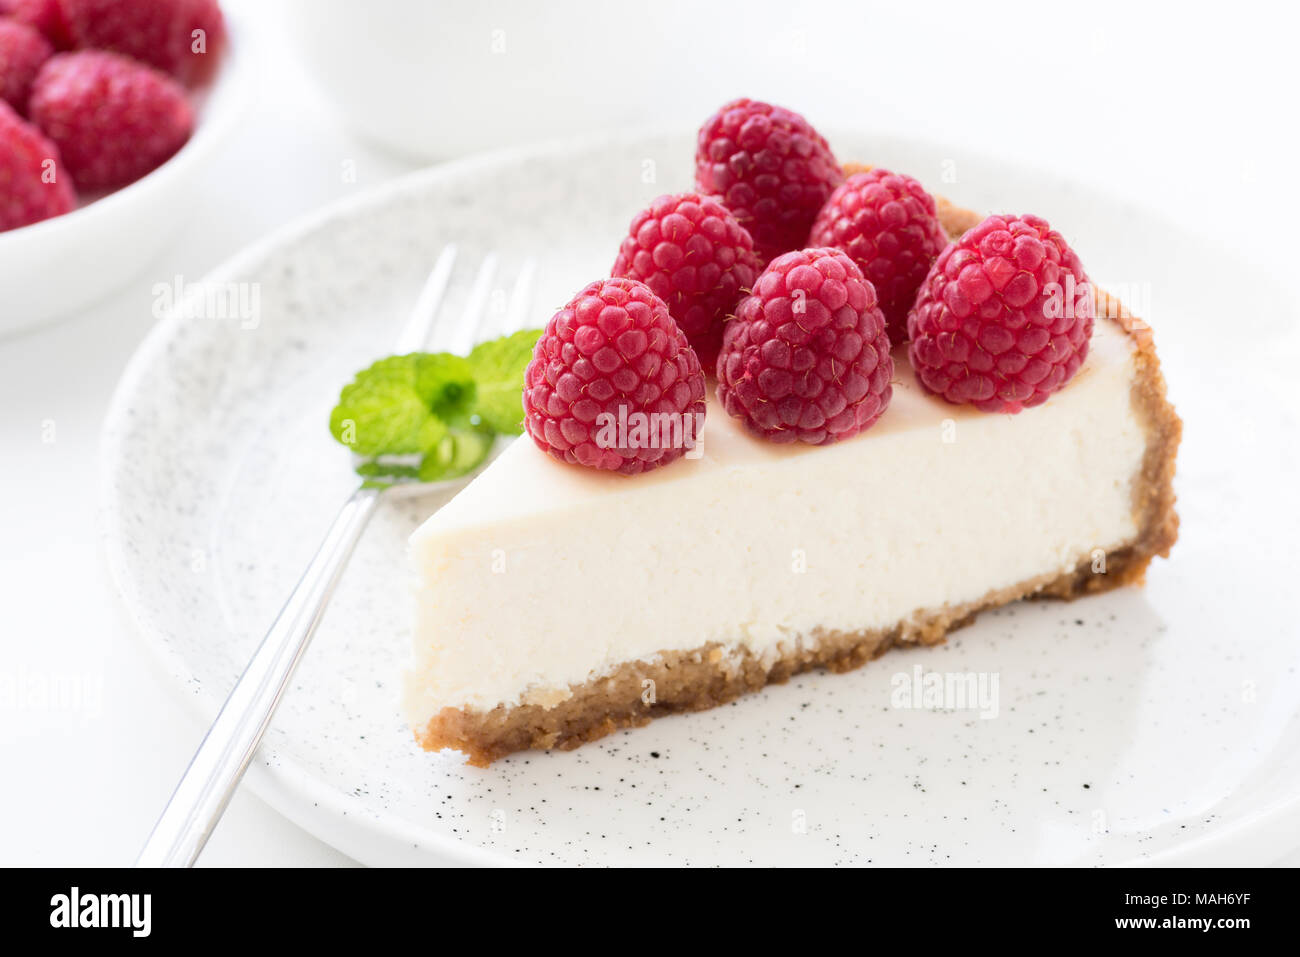 Cheesecake with fresh raspberries on white plate. Closeup view, selective focus - Stock Image